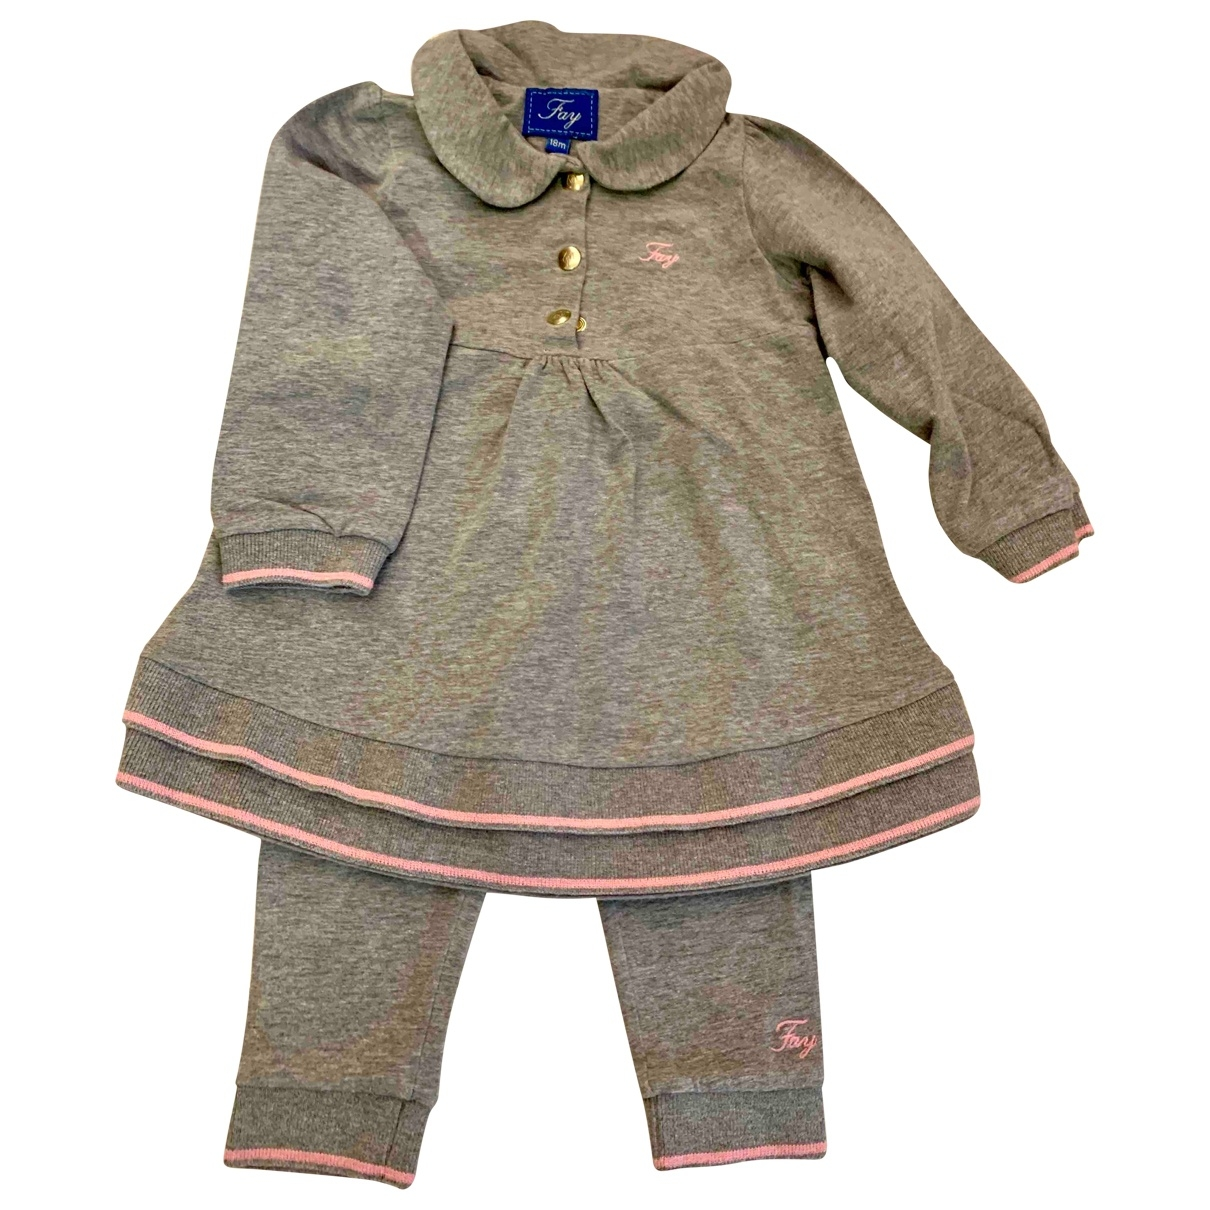 Fay \N Grey Cotton Outfits for Kids 18 months - up to 81cm FR